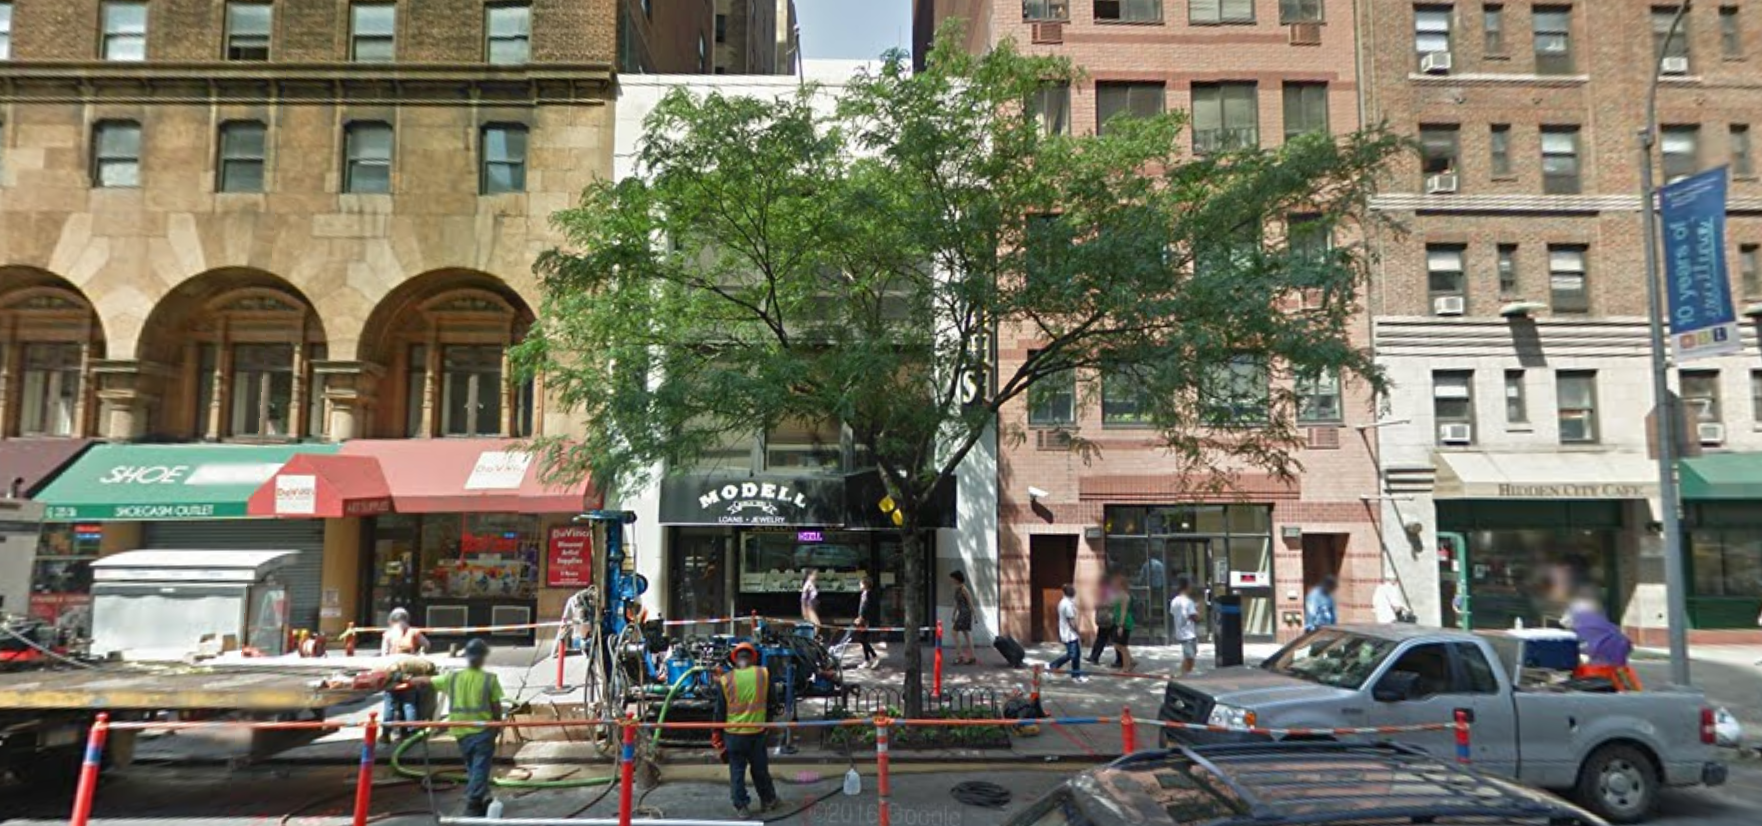 139 East 23rd Street, image via Google Maps